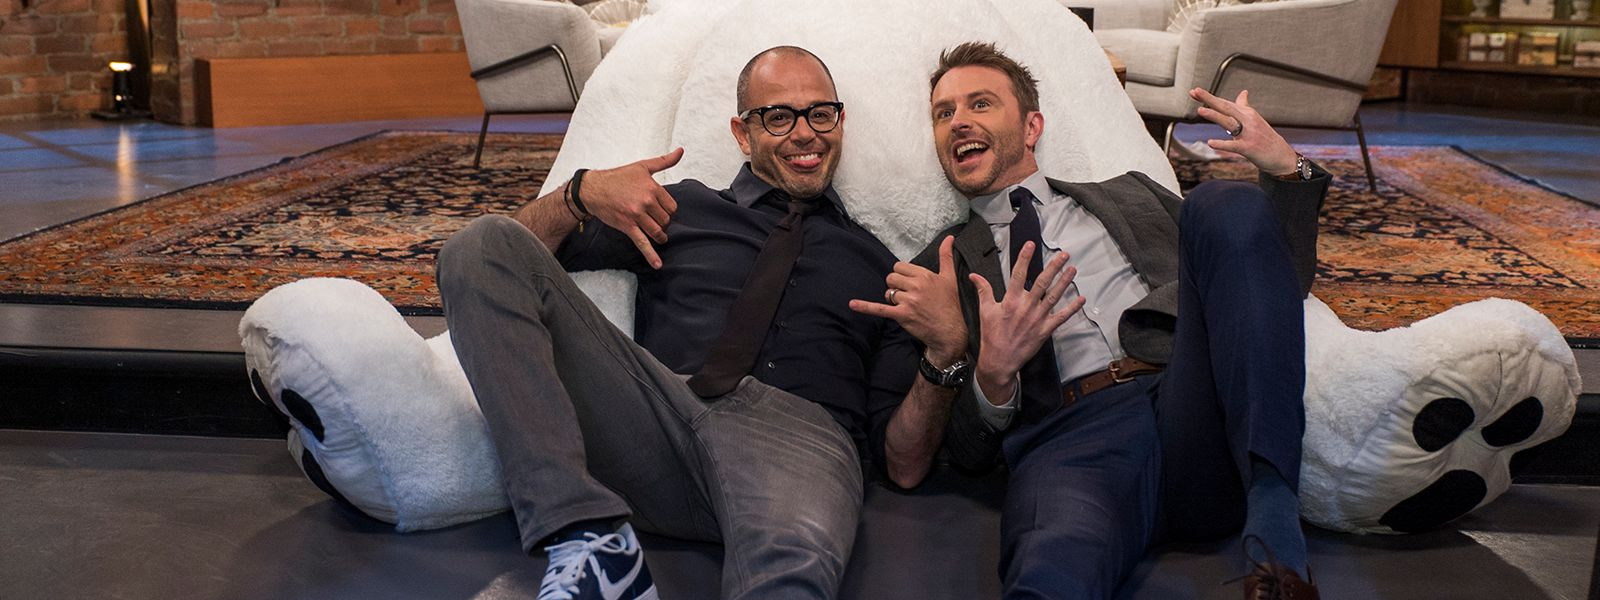 talking-with-chris-hardwick-episode-109-damon-lindelof-chris-hardwick-800×600